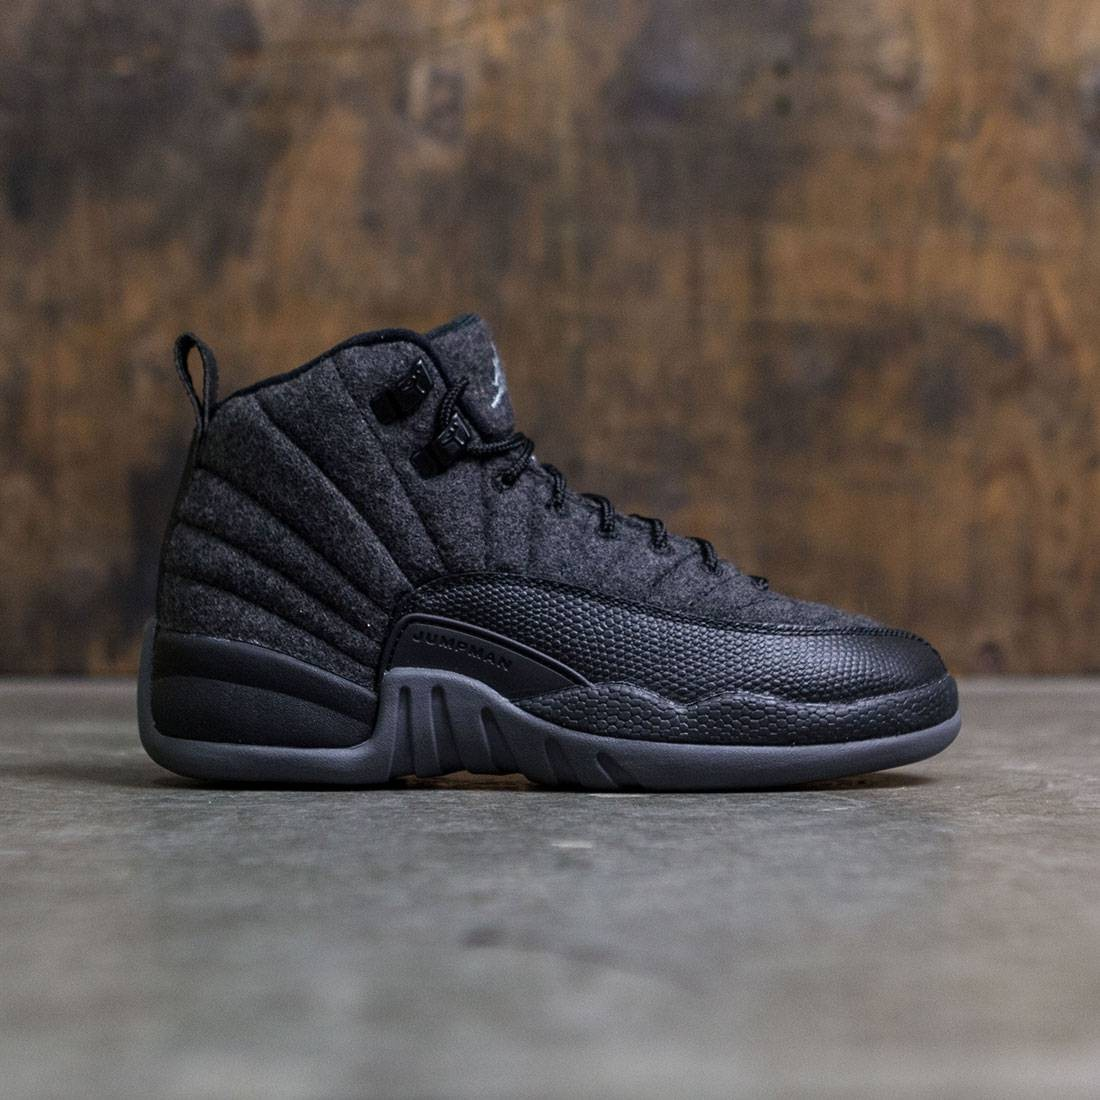 check out 13767 aa11b Air Jordan 12 Retro Premium (GS) Big Kids (dark grey / metallic  silver-black)